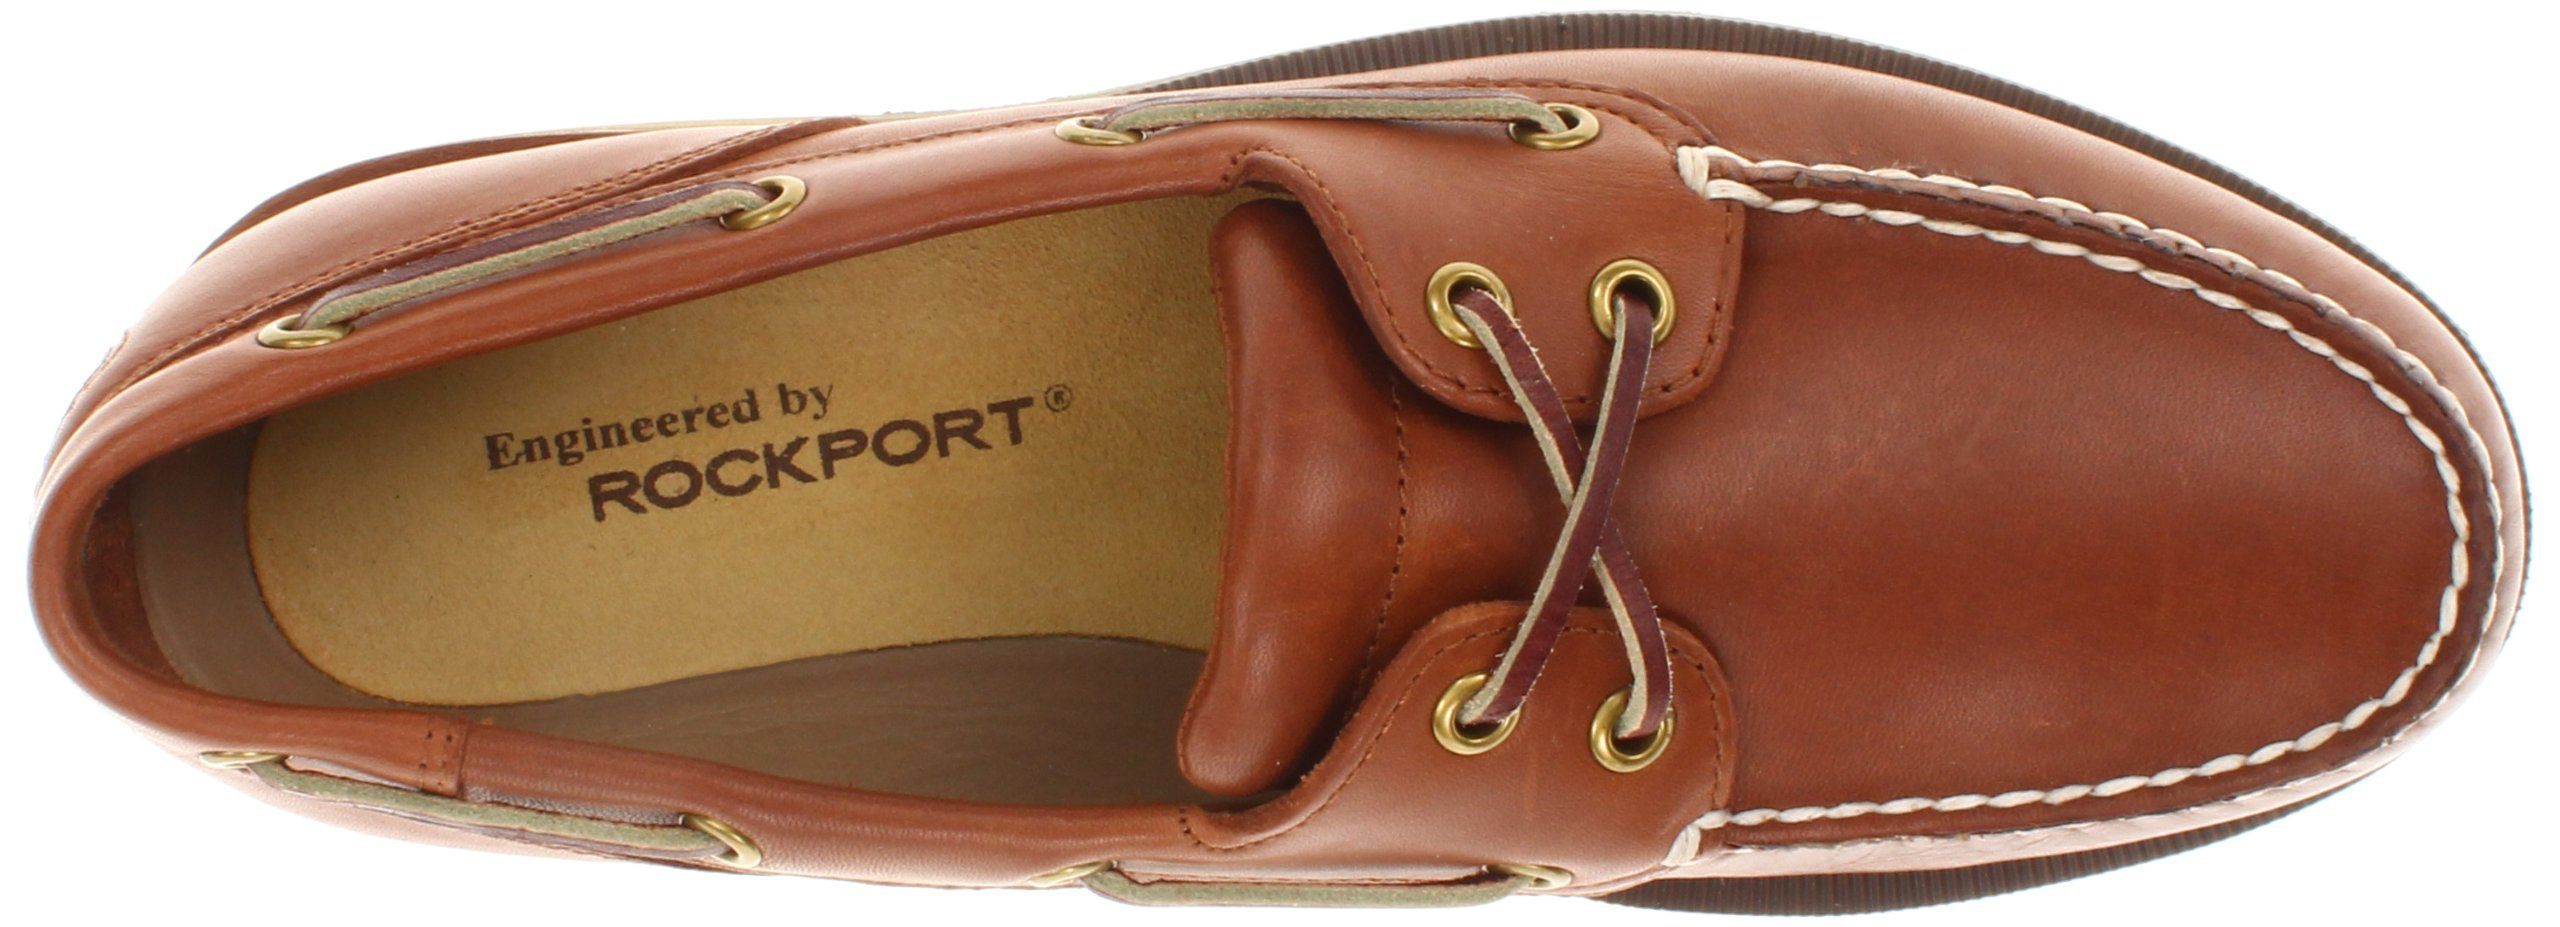 64d3626ae2 Rockport Men s Ports of Call Perth Slip-On Boat Shoe Top View